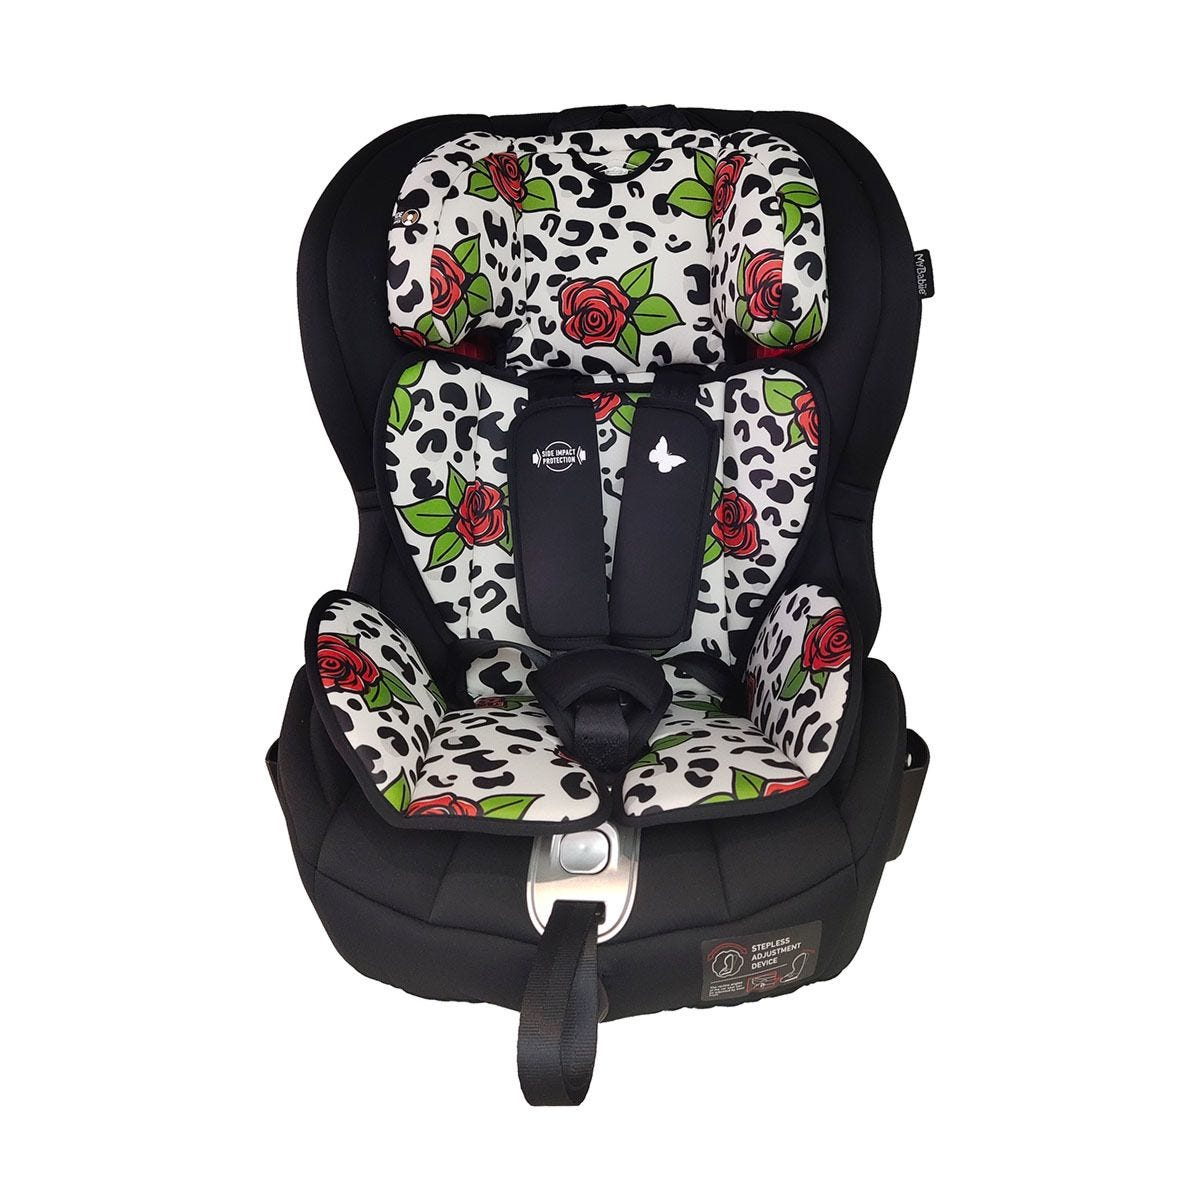 My Babiie Katie Piper Believe Group 1 2 3  Isofix Car Seat - Rose Leopard